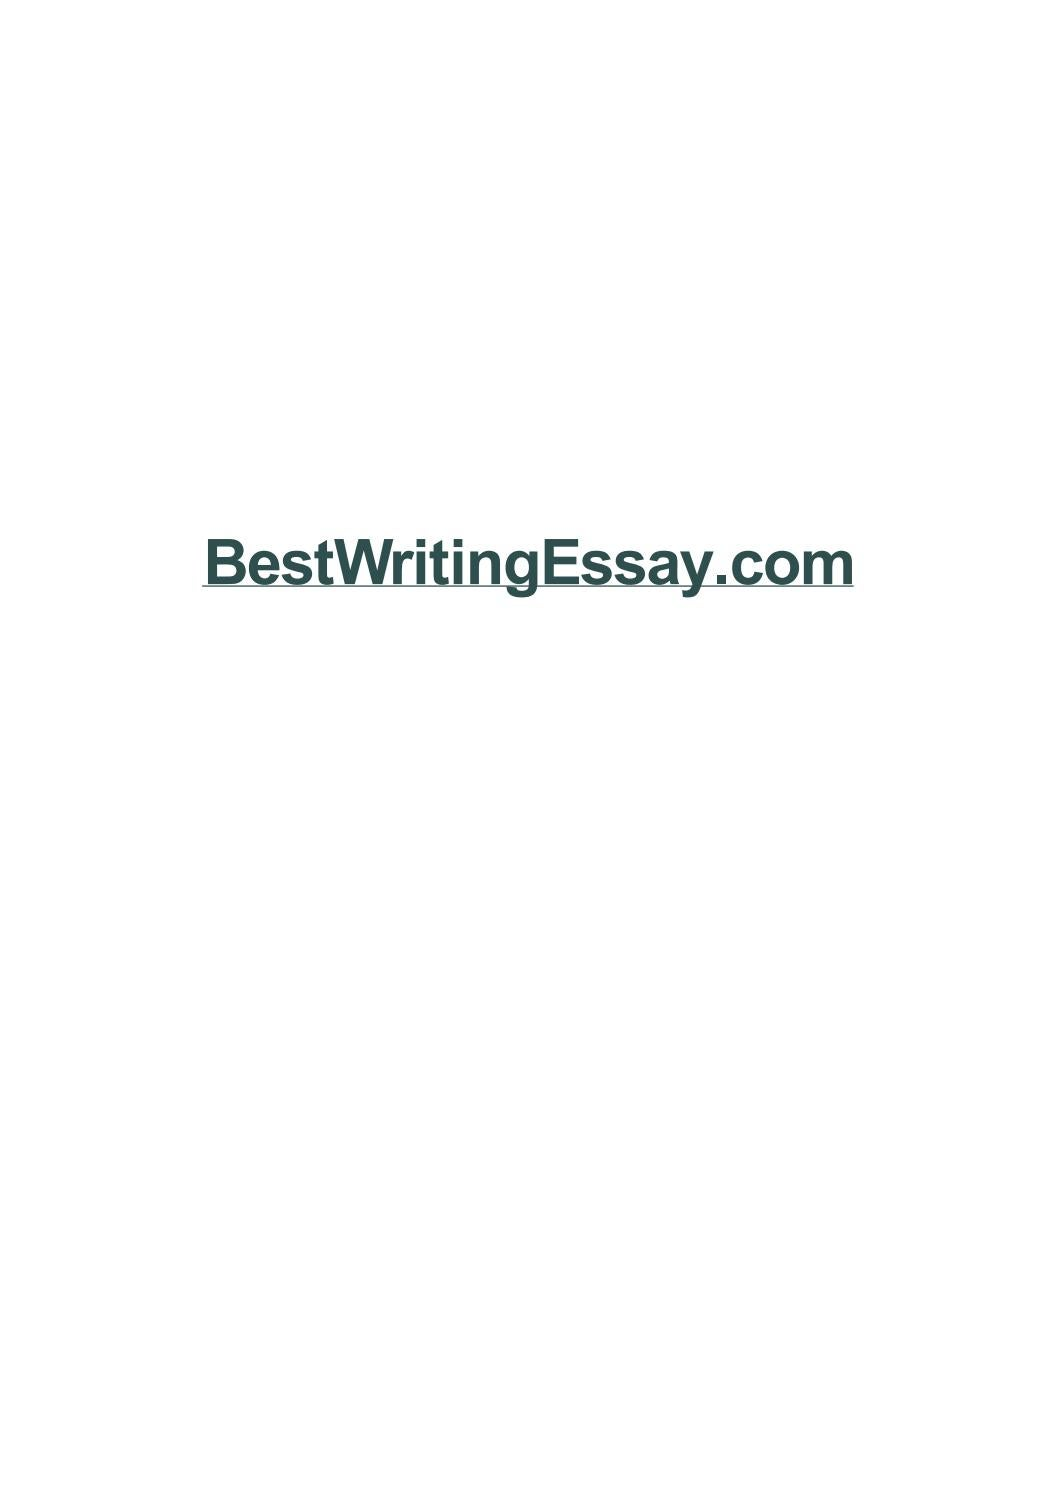 Top article ghostwriting services for masters